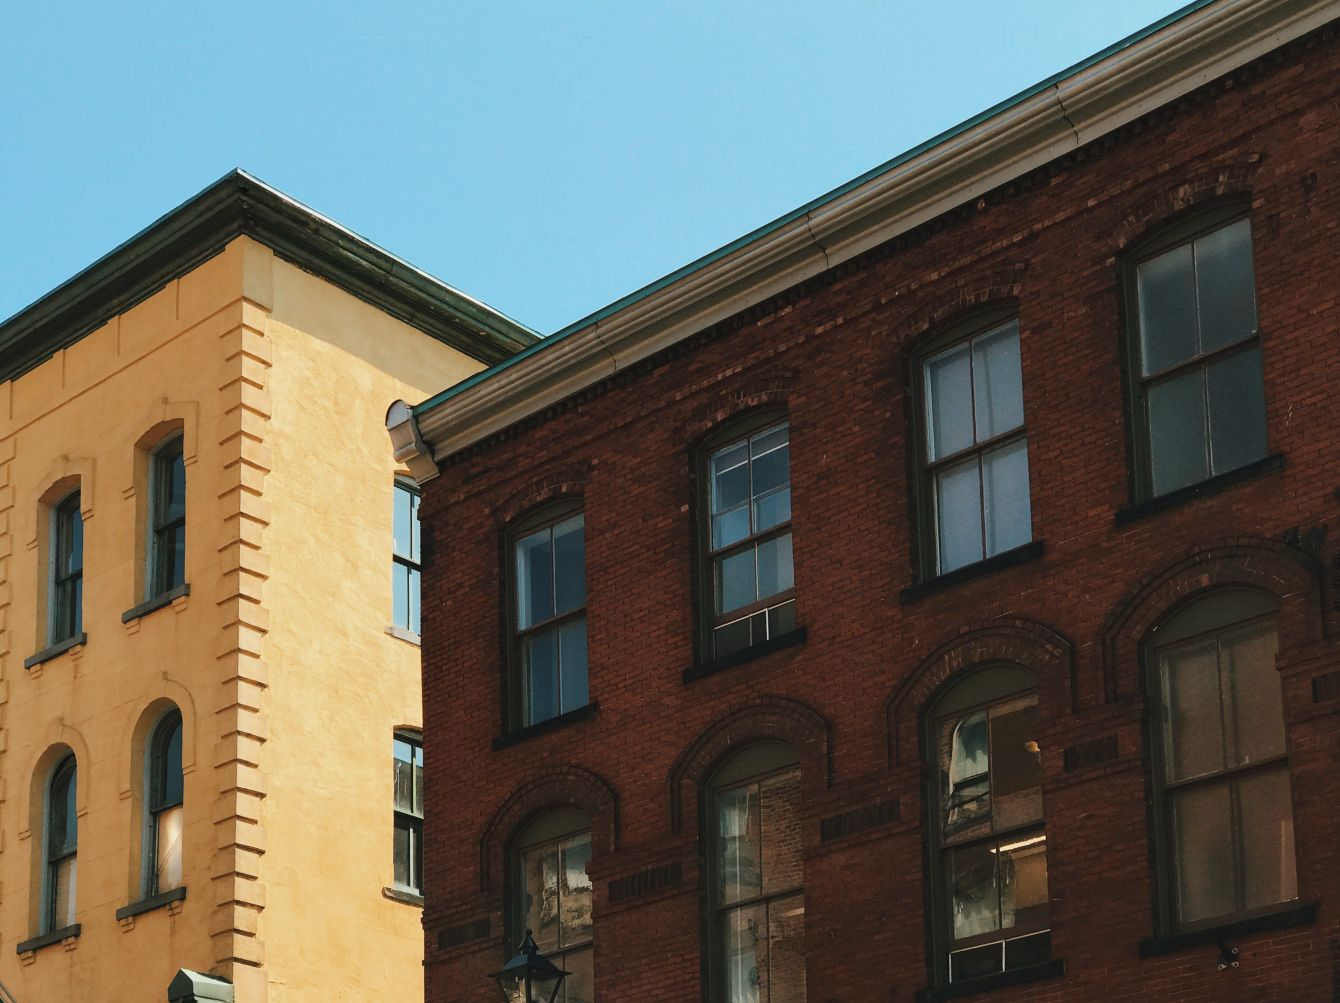 Click thumbnail to see details about photo - Princess Street Buildings Photograph